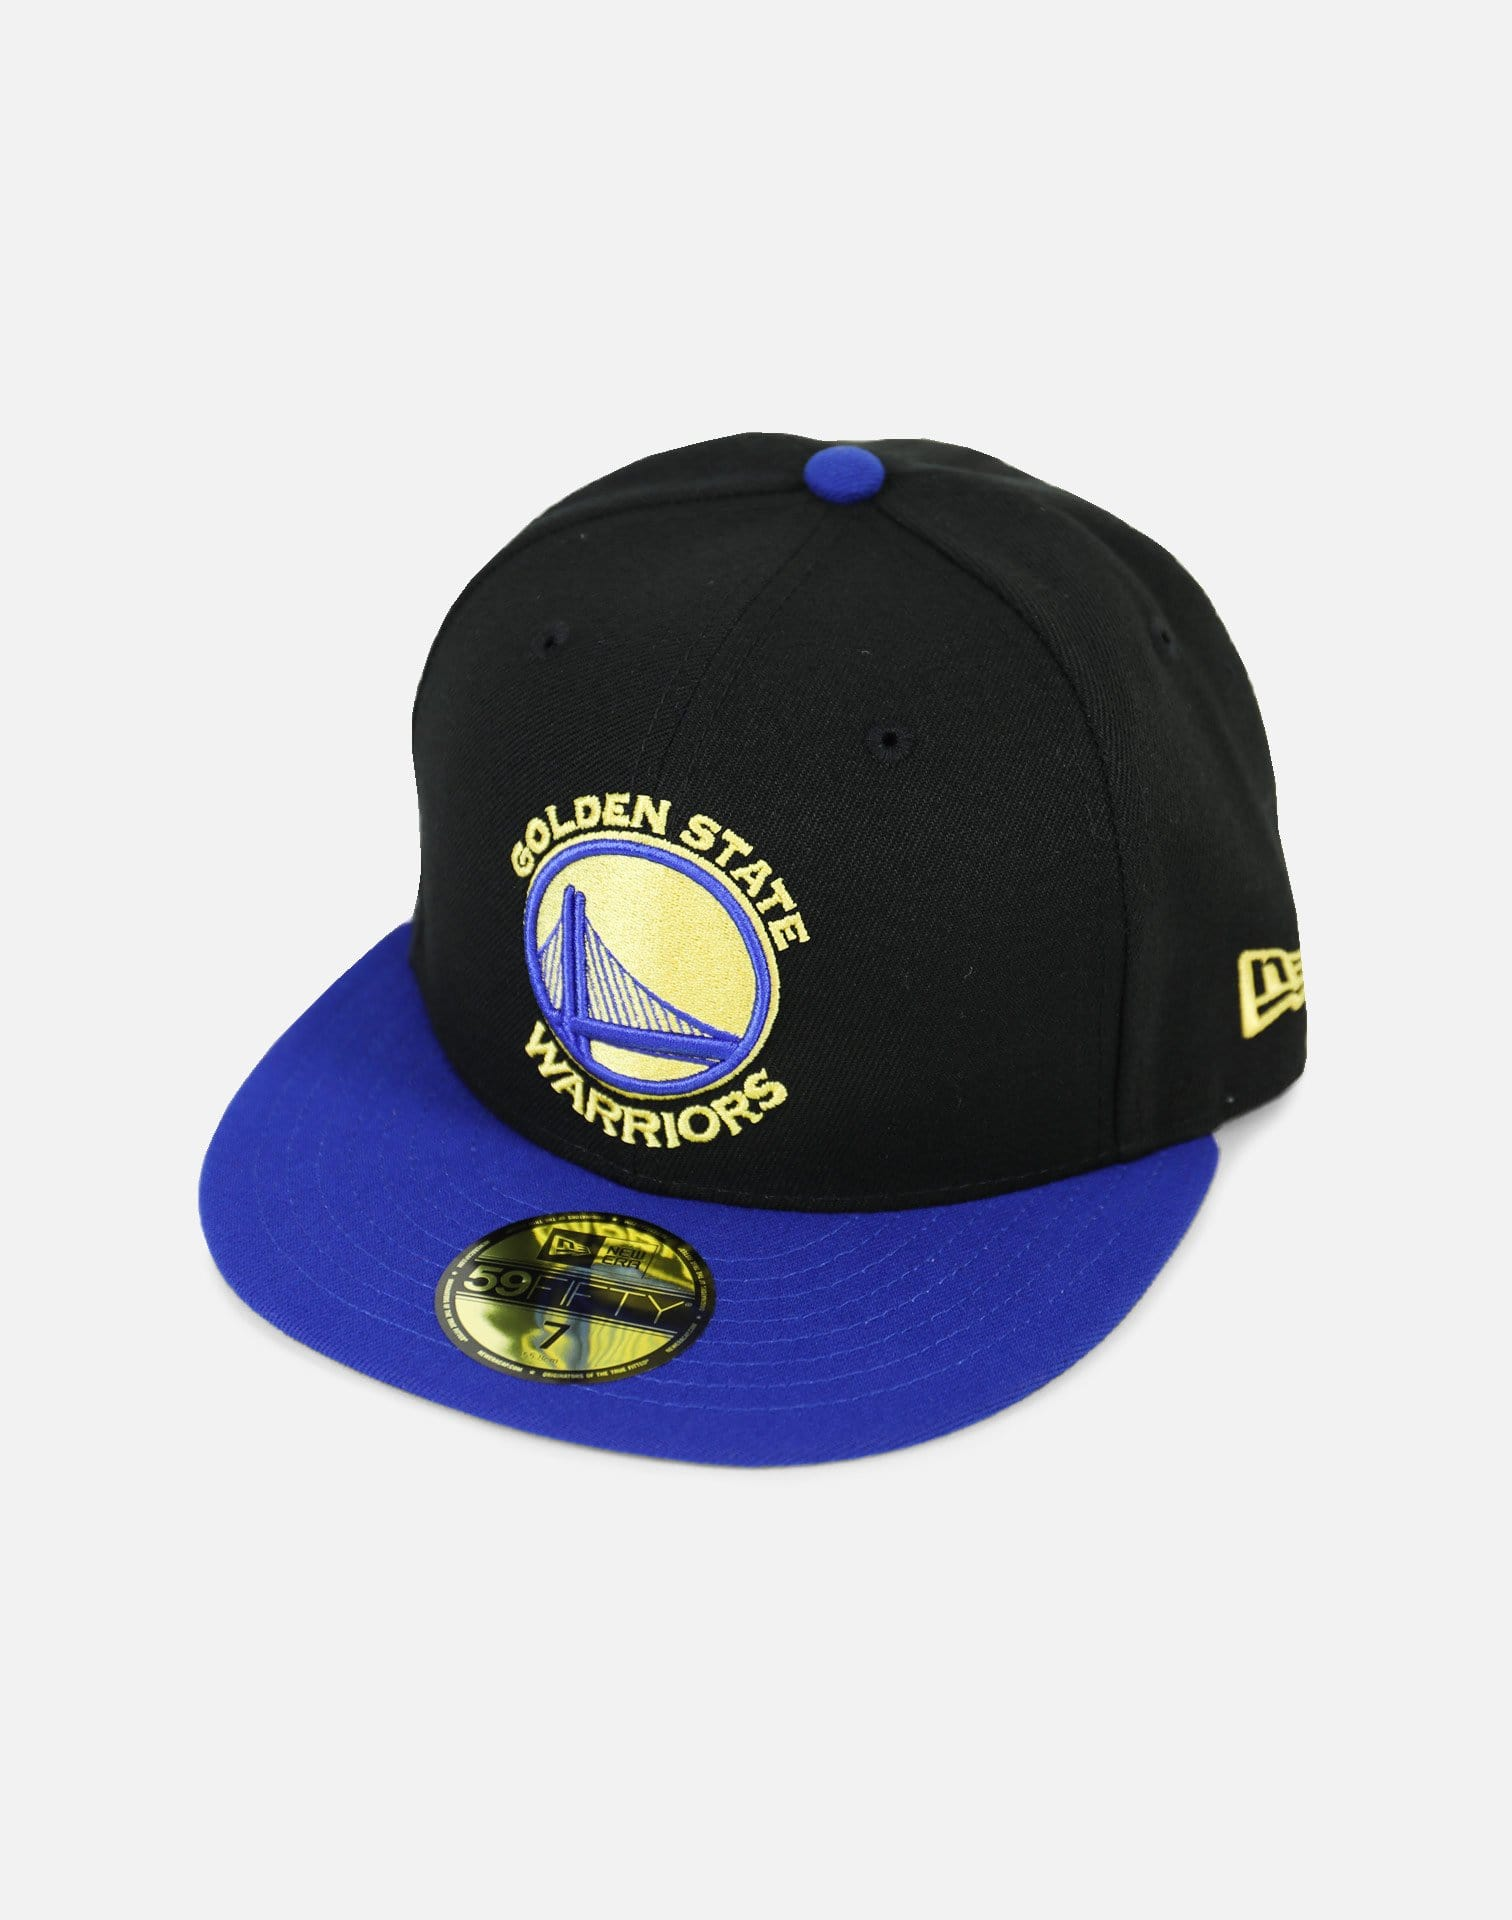 New Era Golden State Warriors Authentic Fitted Hat (Black/Blue)